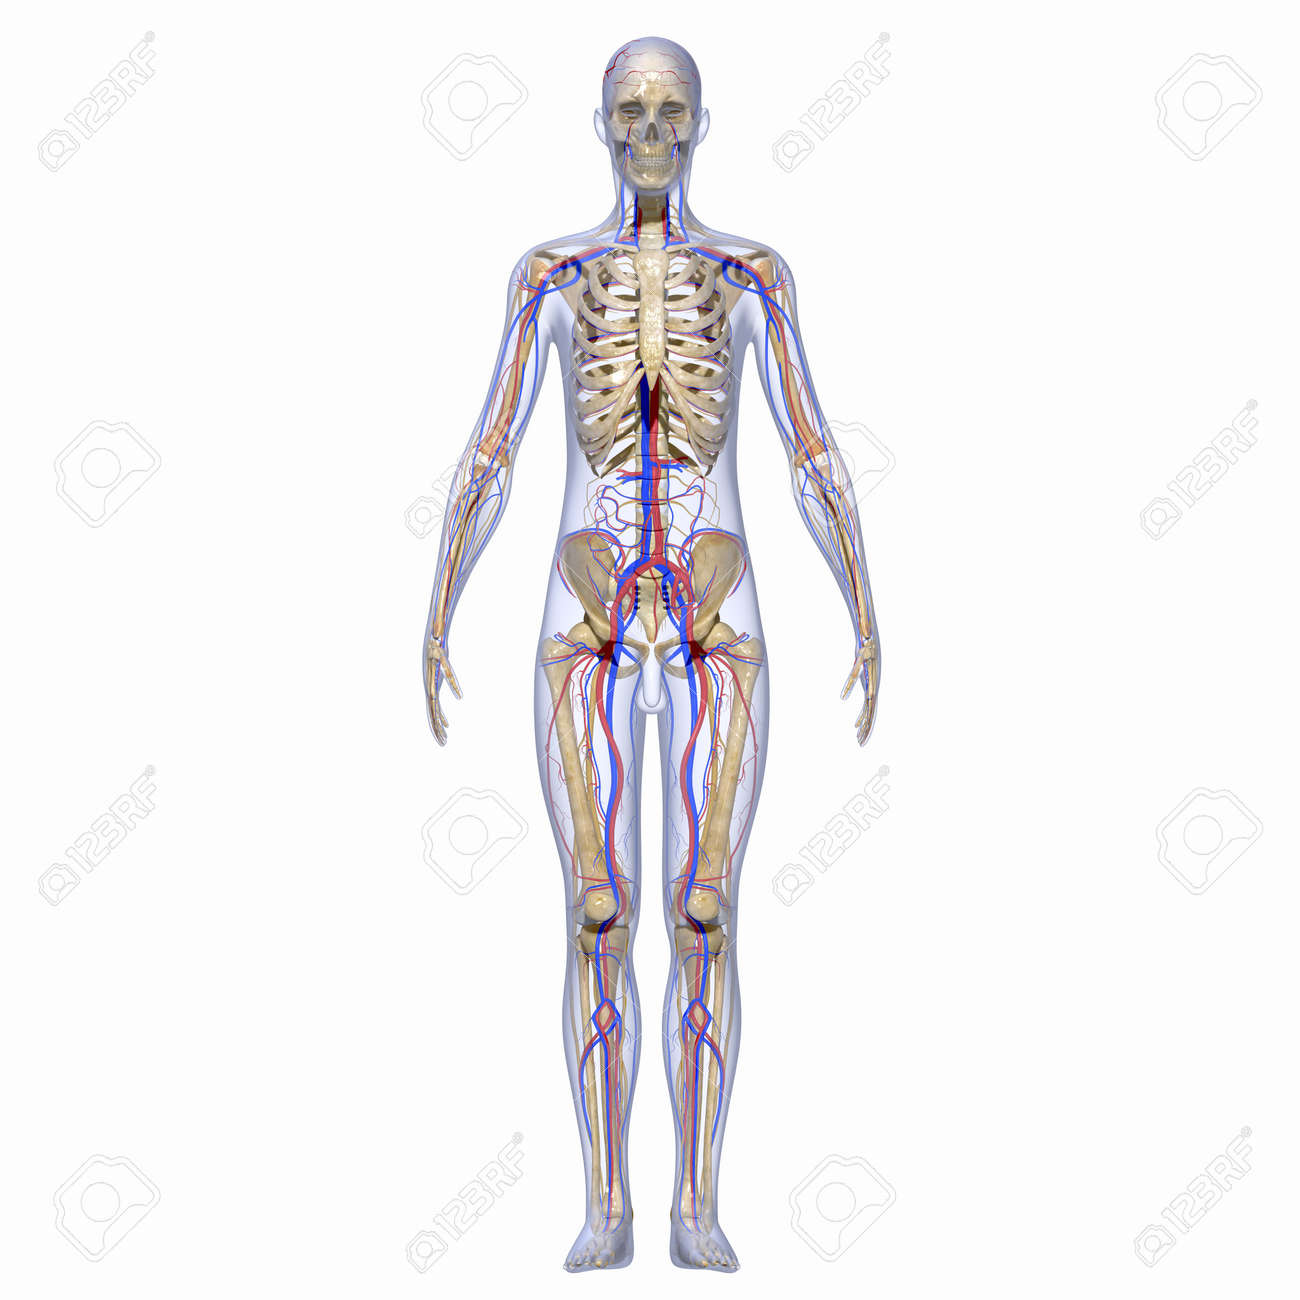 Human Anatomy Stock Photo Picture And Royalty Free Image Image